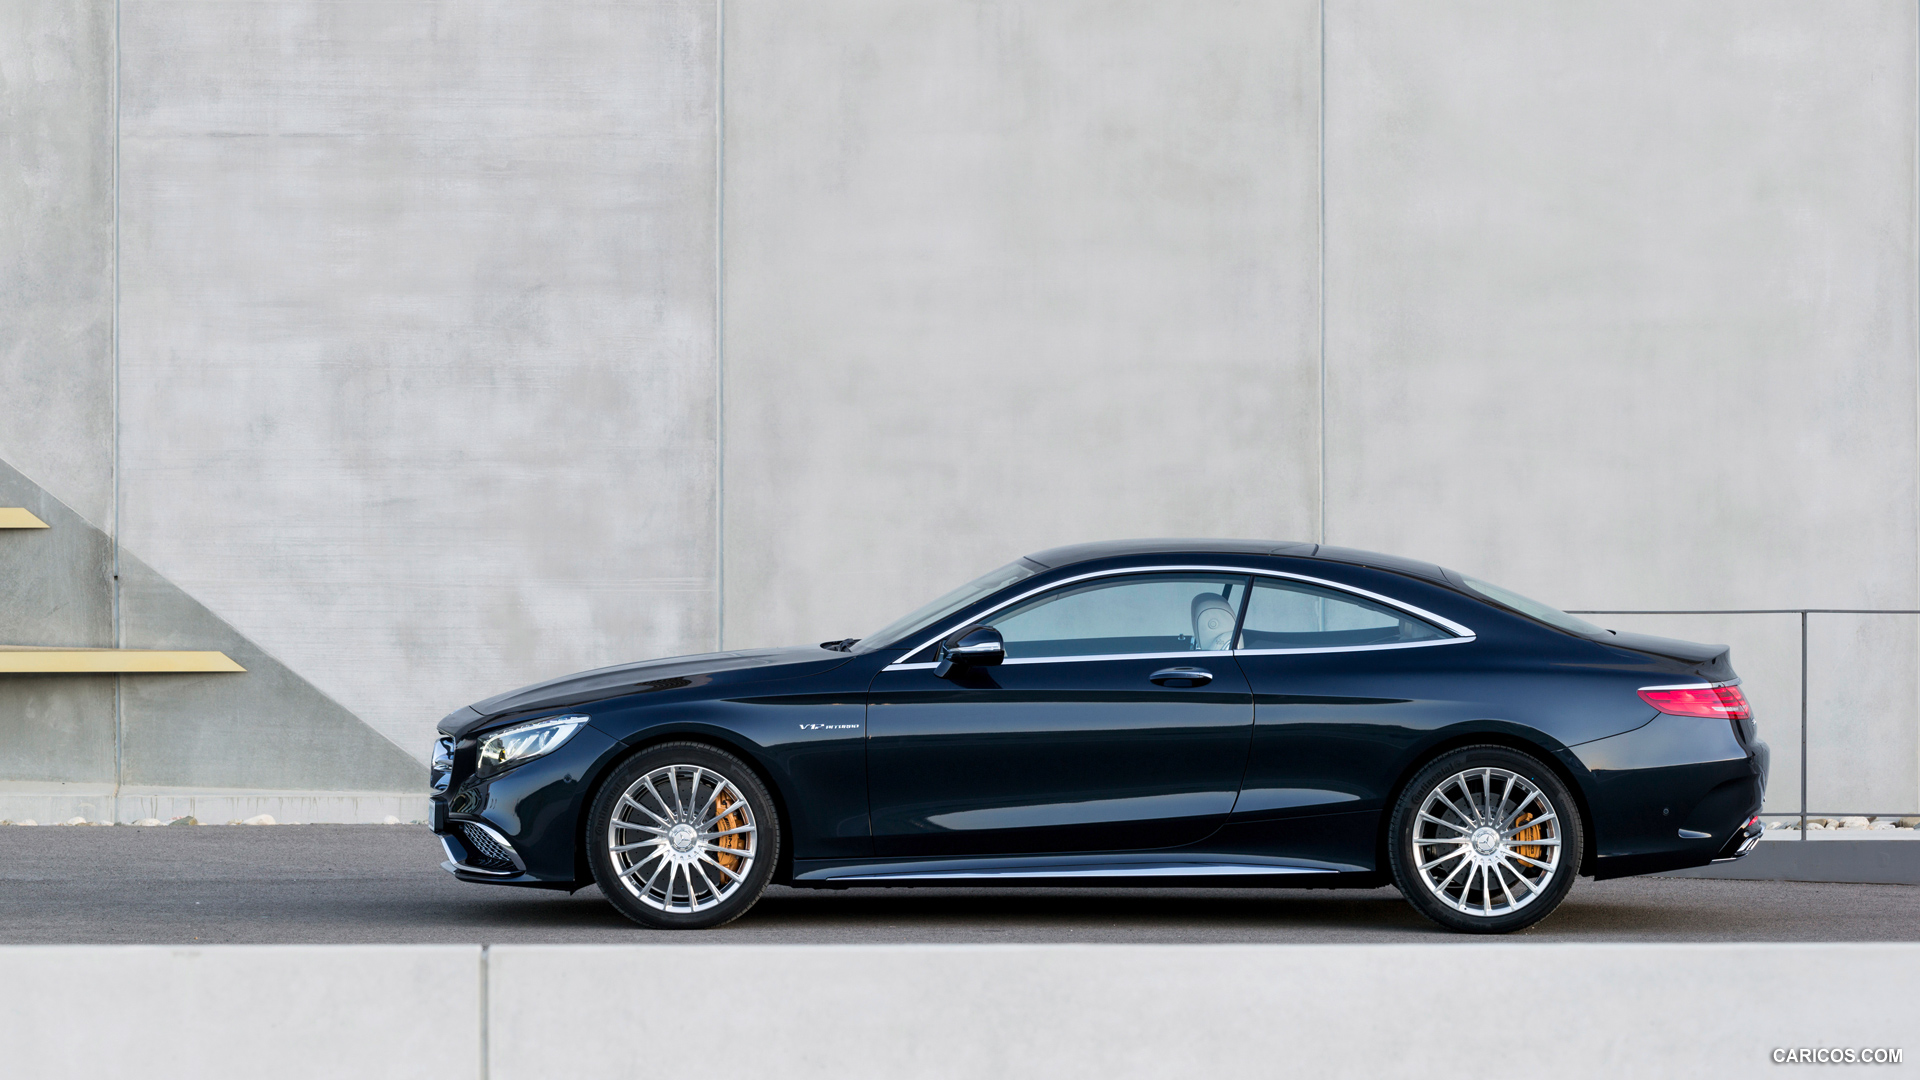 Mercedes-Benz S65 AMG Coupe photos - Photo Gallery Page #5 ...